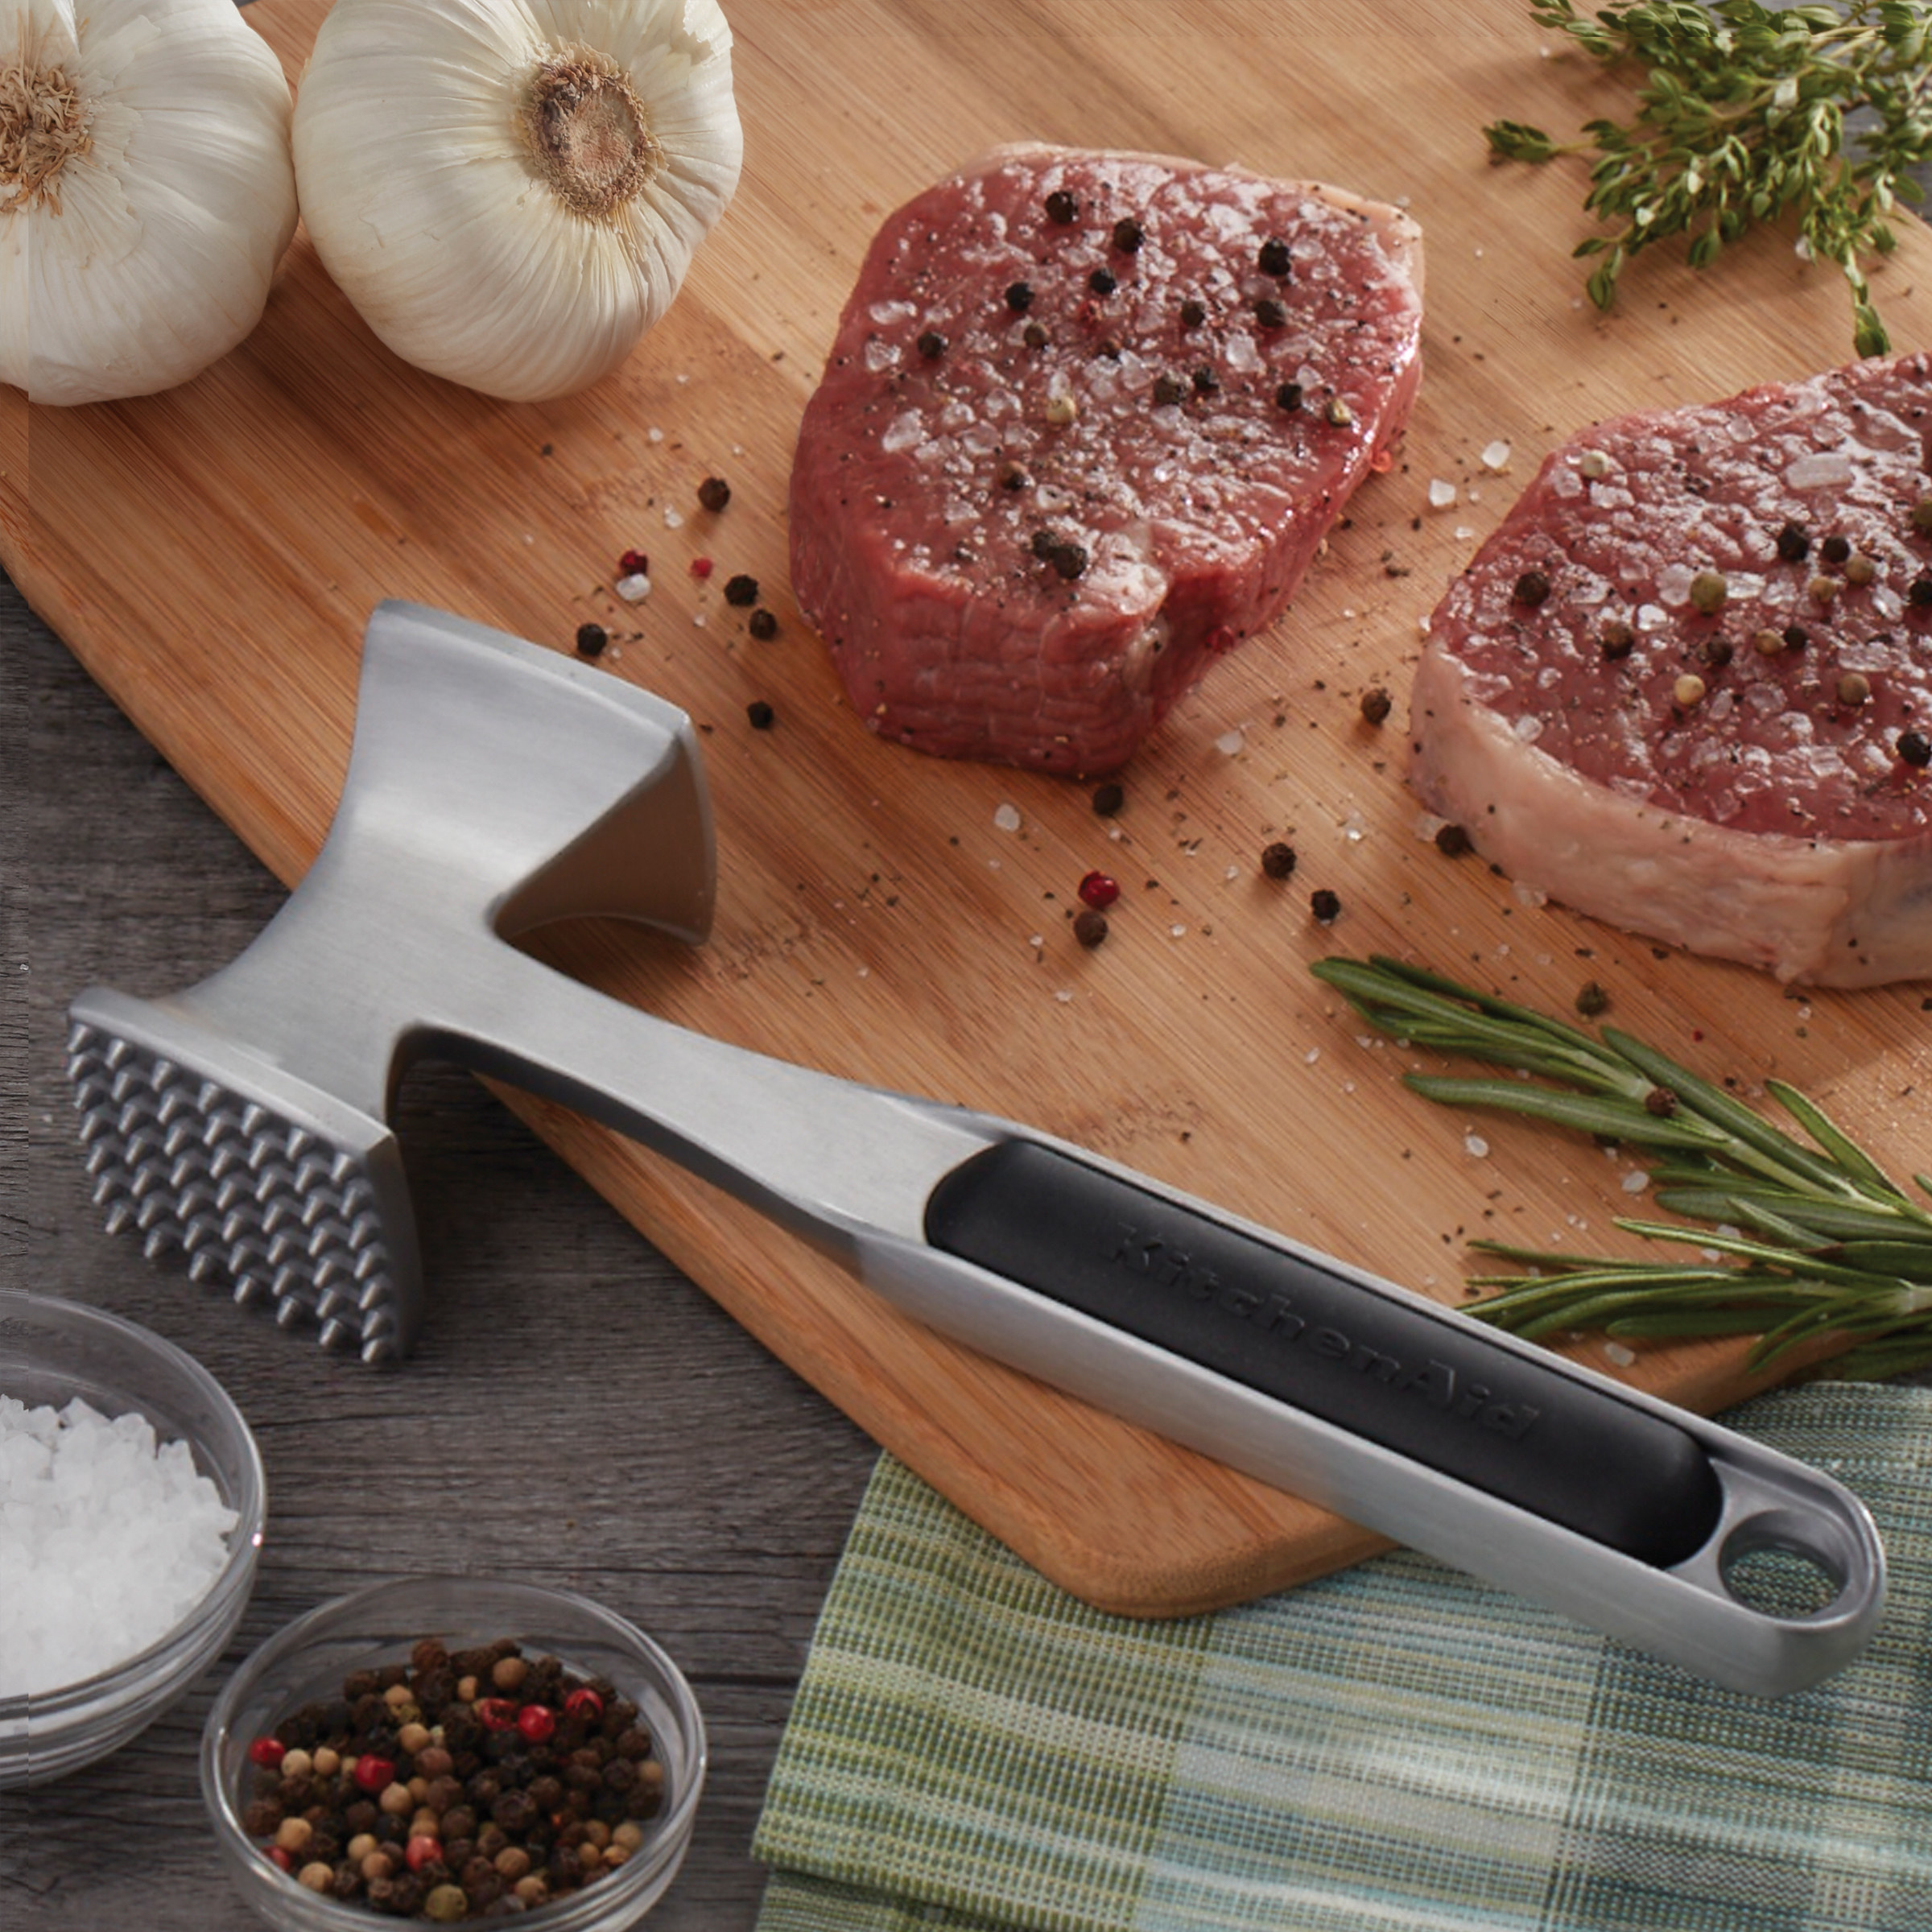 KitchenAid meat tenderizer laying on a cutting board next to peppered steaks